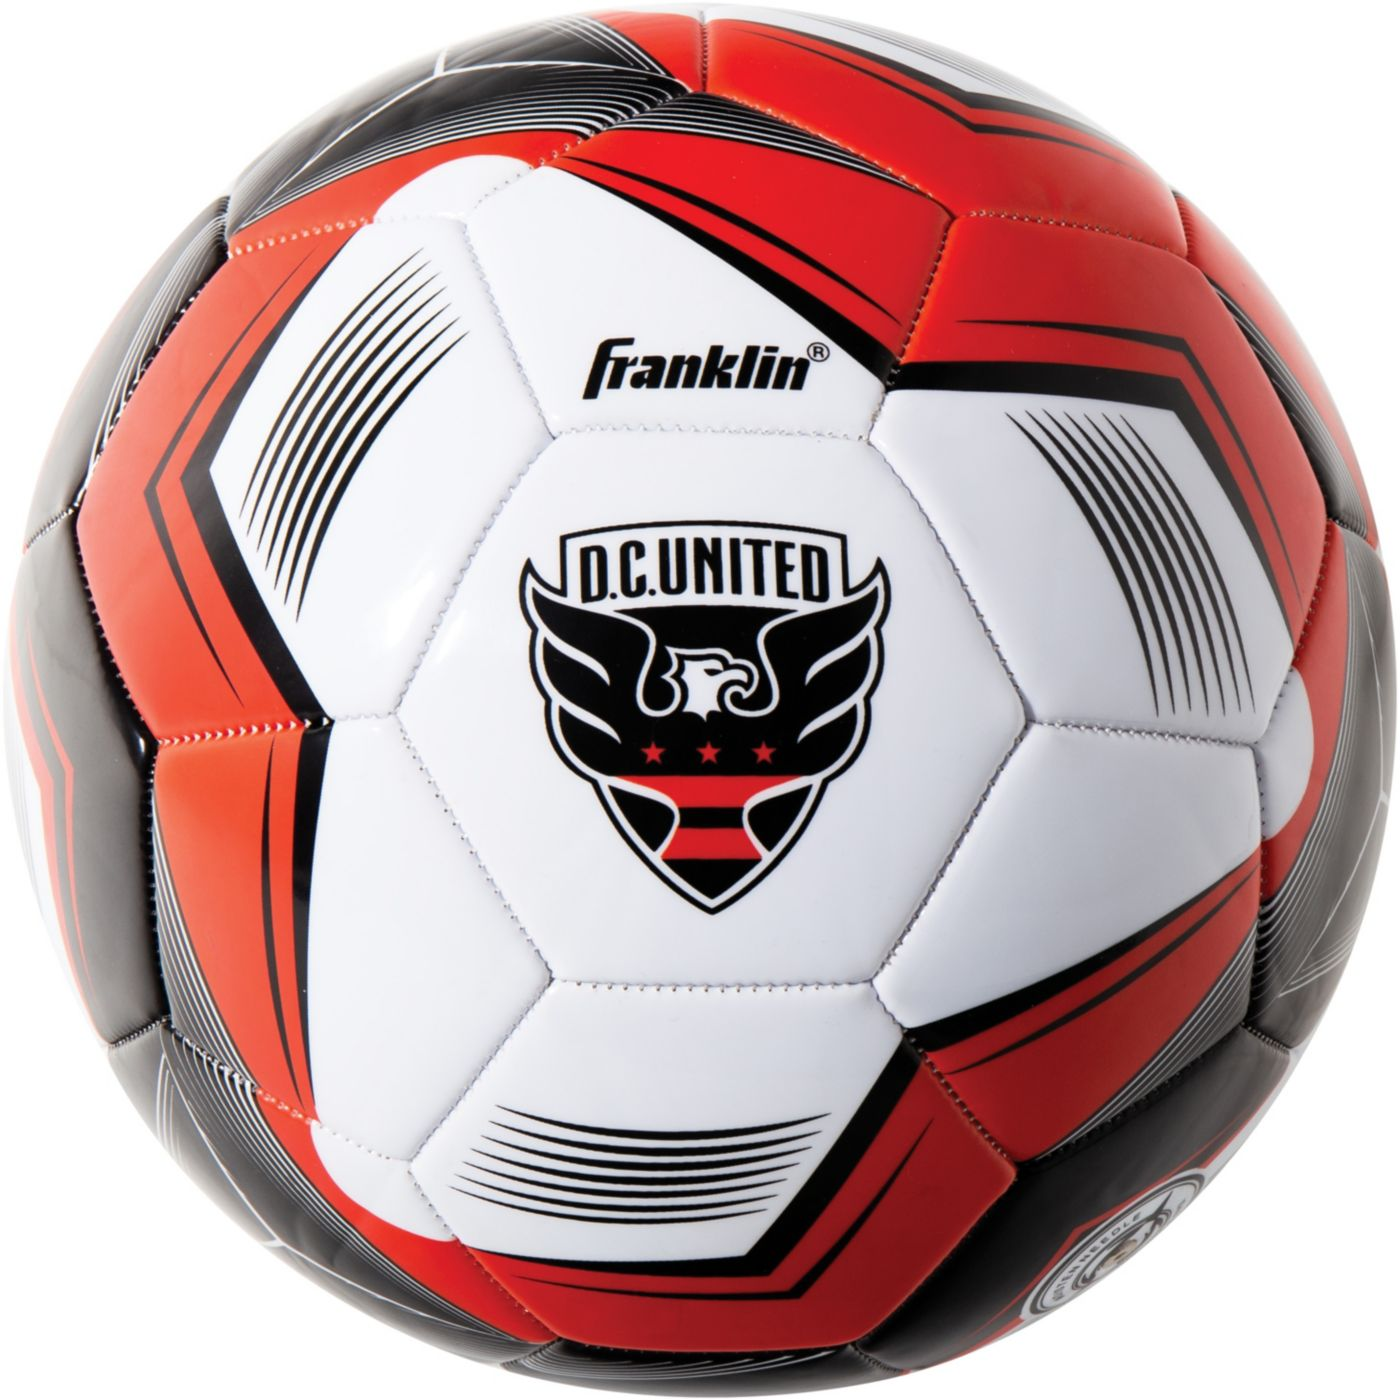 Franklin D.C. United Size 5 Soccer Ball